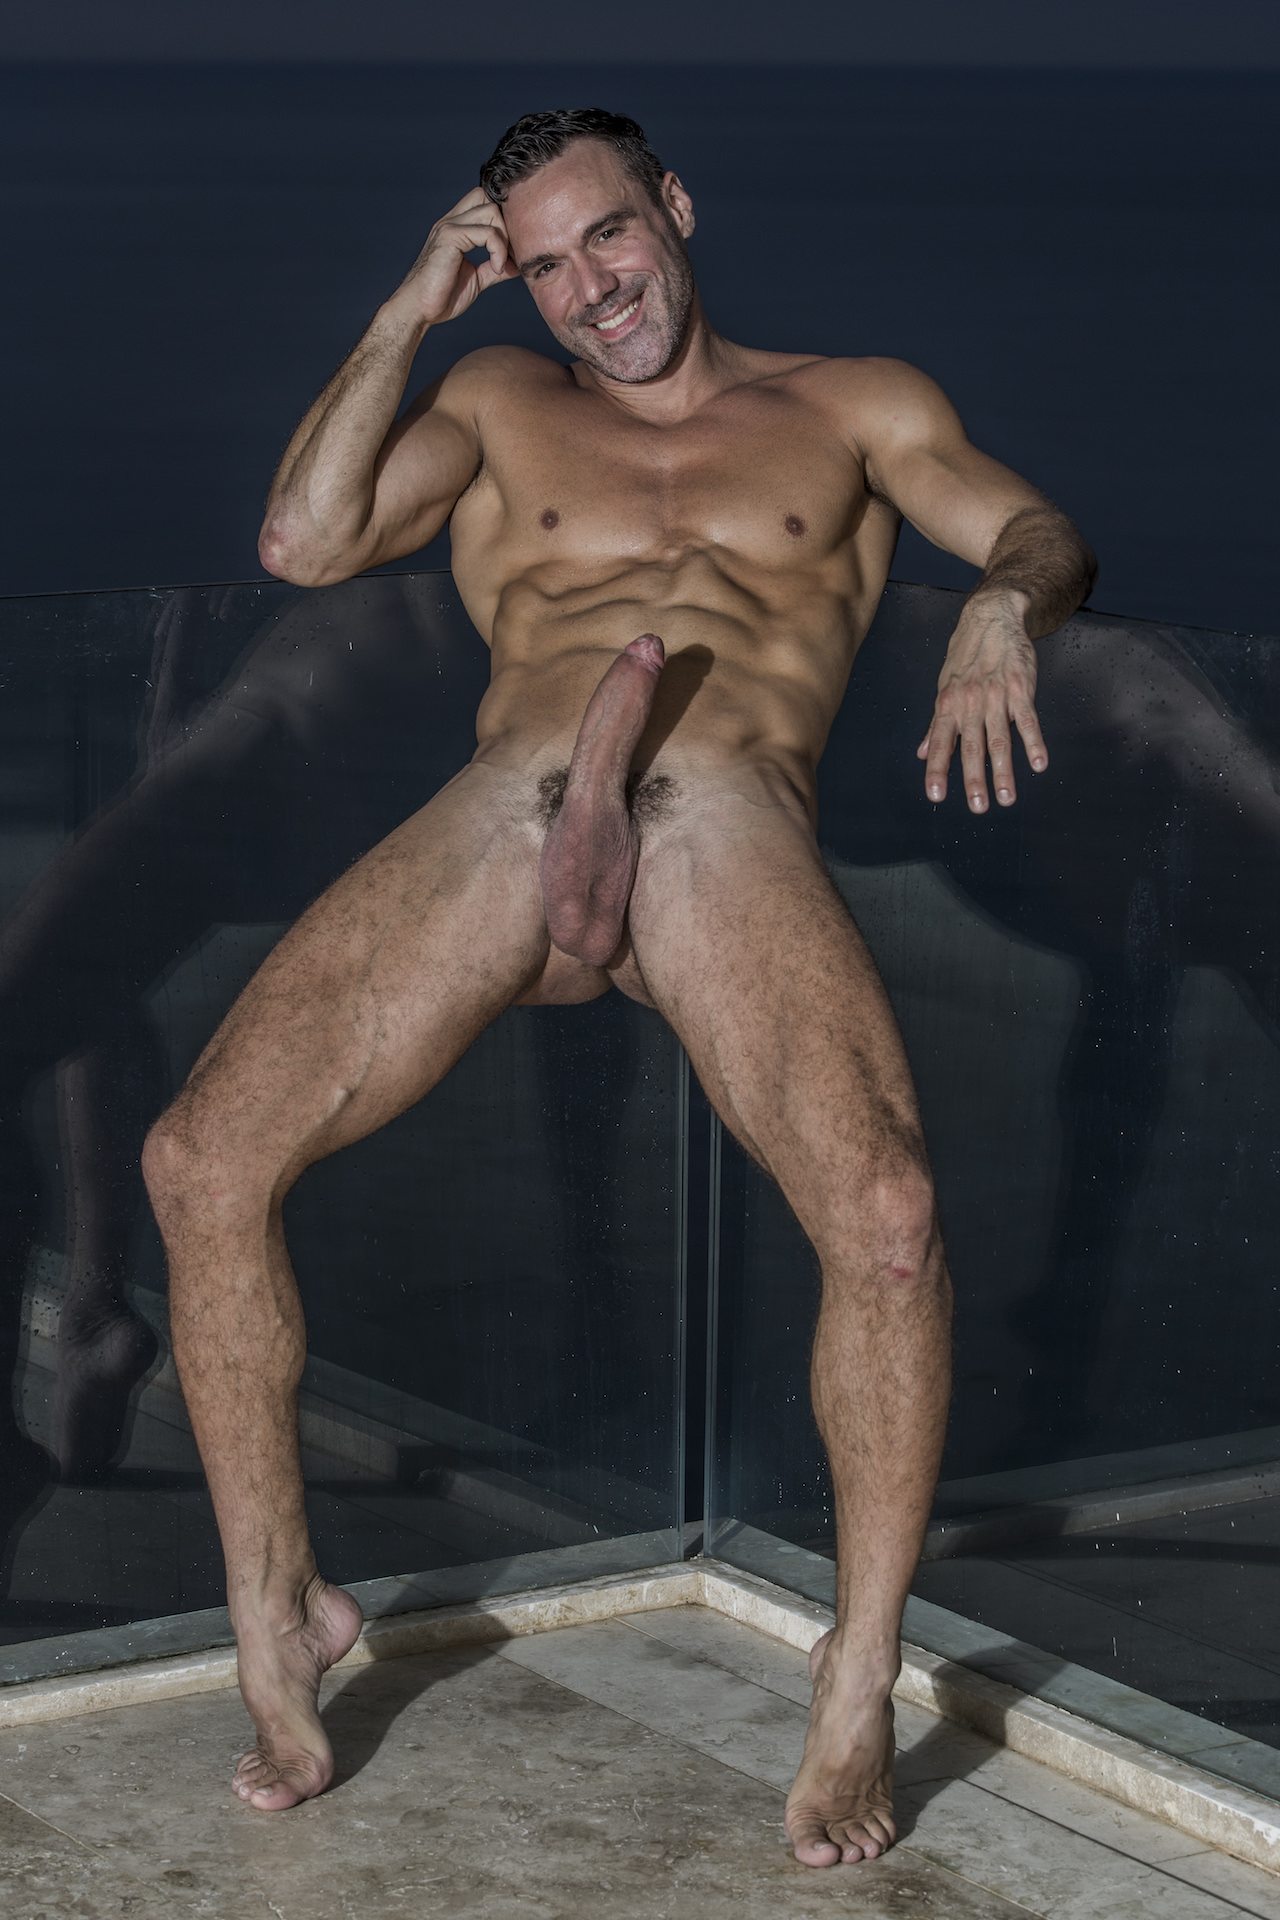 Naked free male models confirm. All